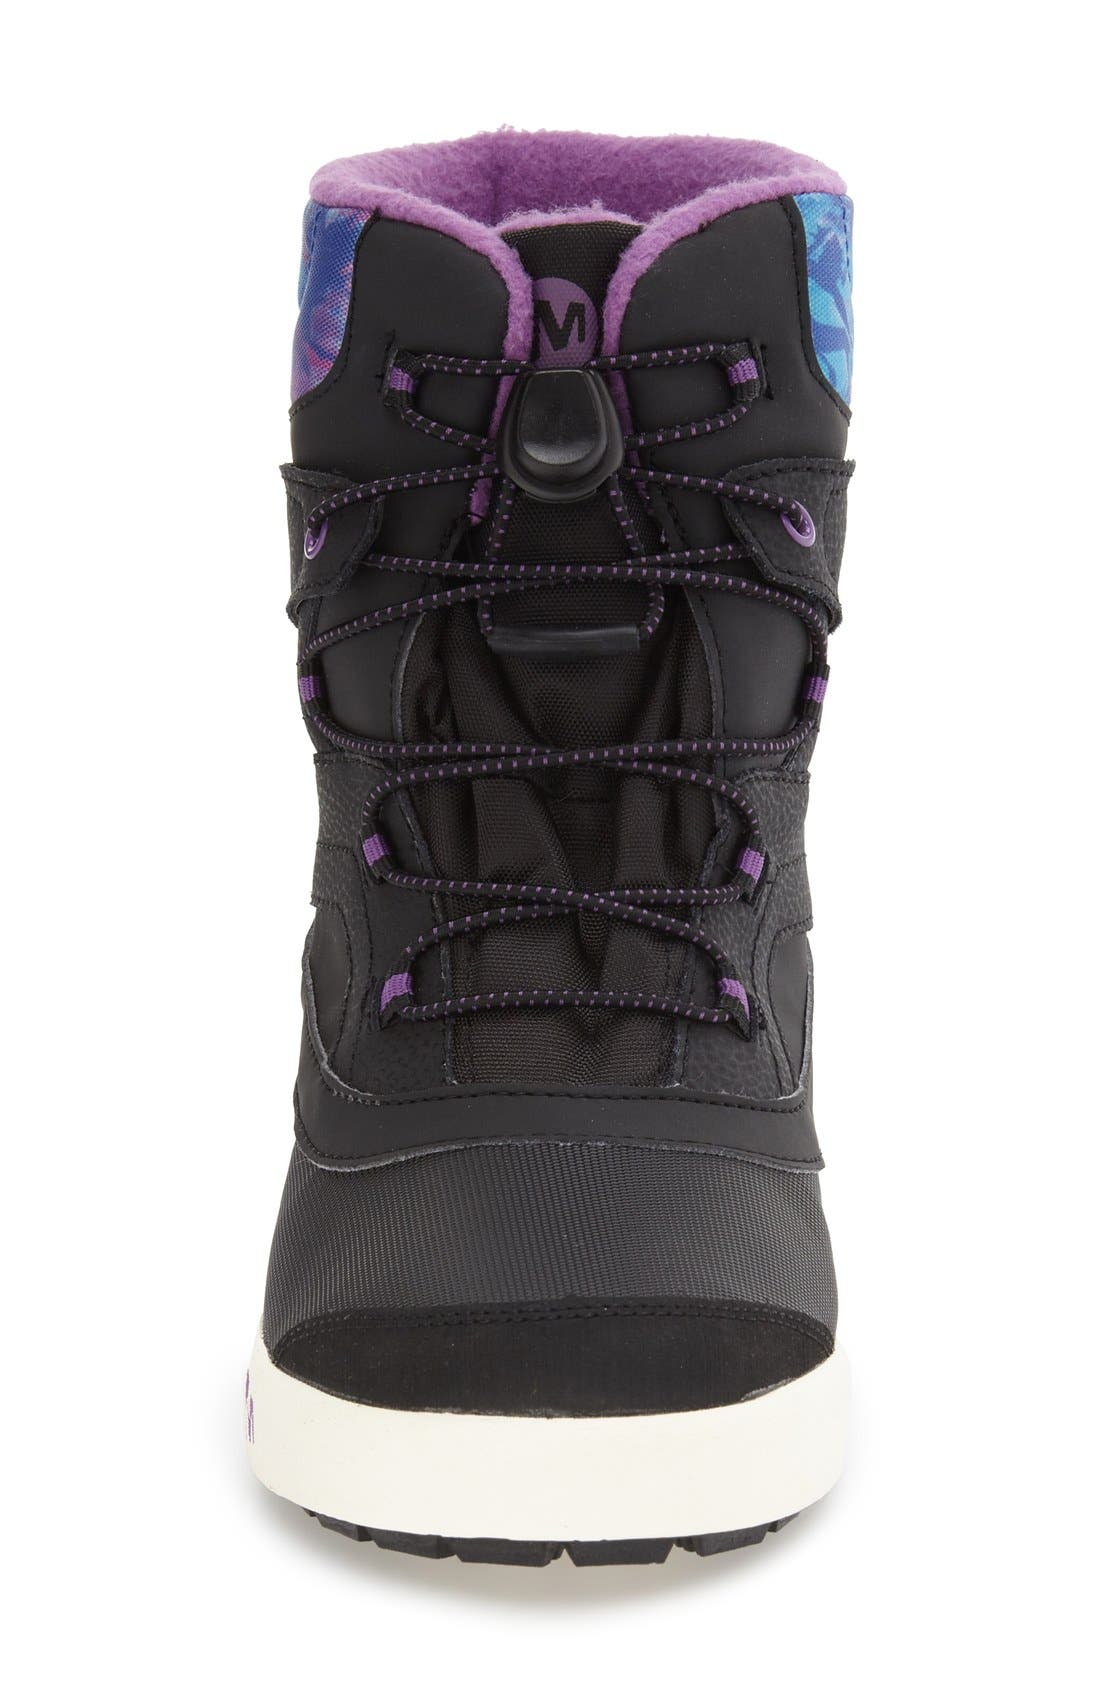 MERRELL,                             'Snow Bank 2' Waterproof Boot,                             Alternate thumbnail 3, color,                             BLACK/ PRINT/ BERRY LEATHER